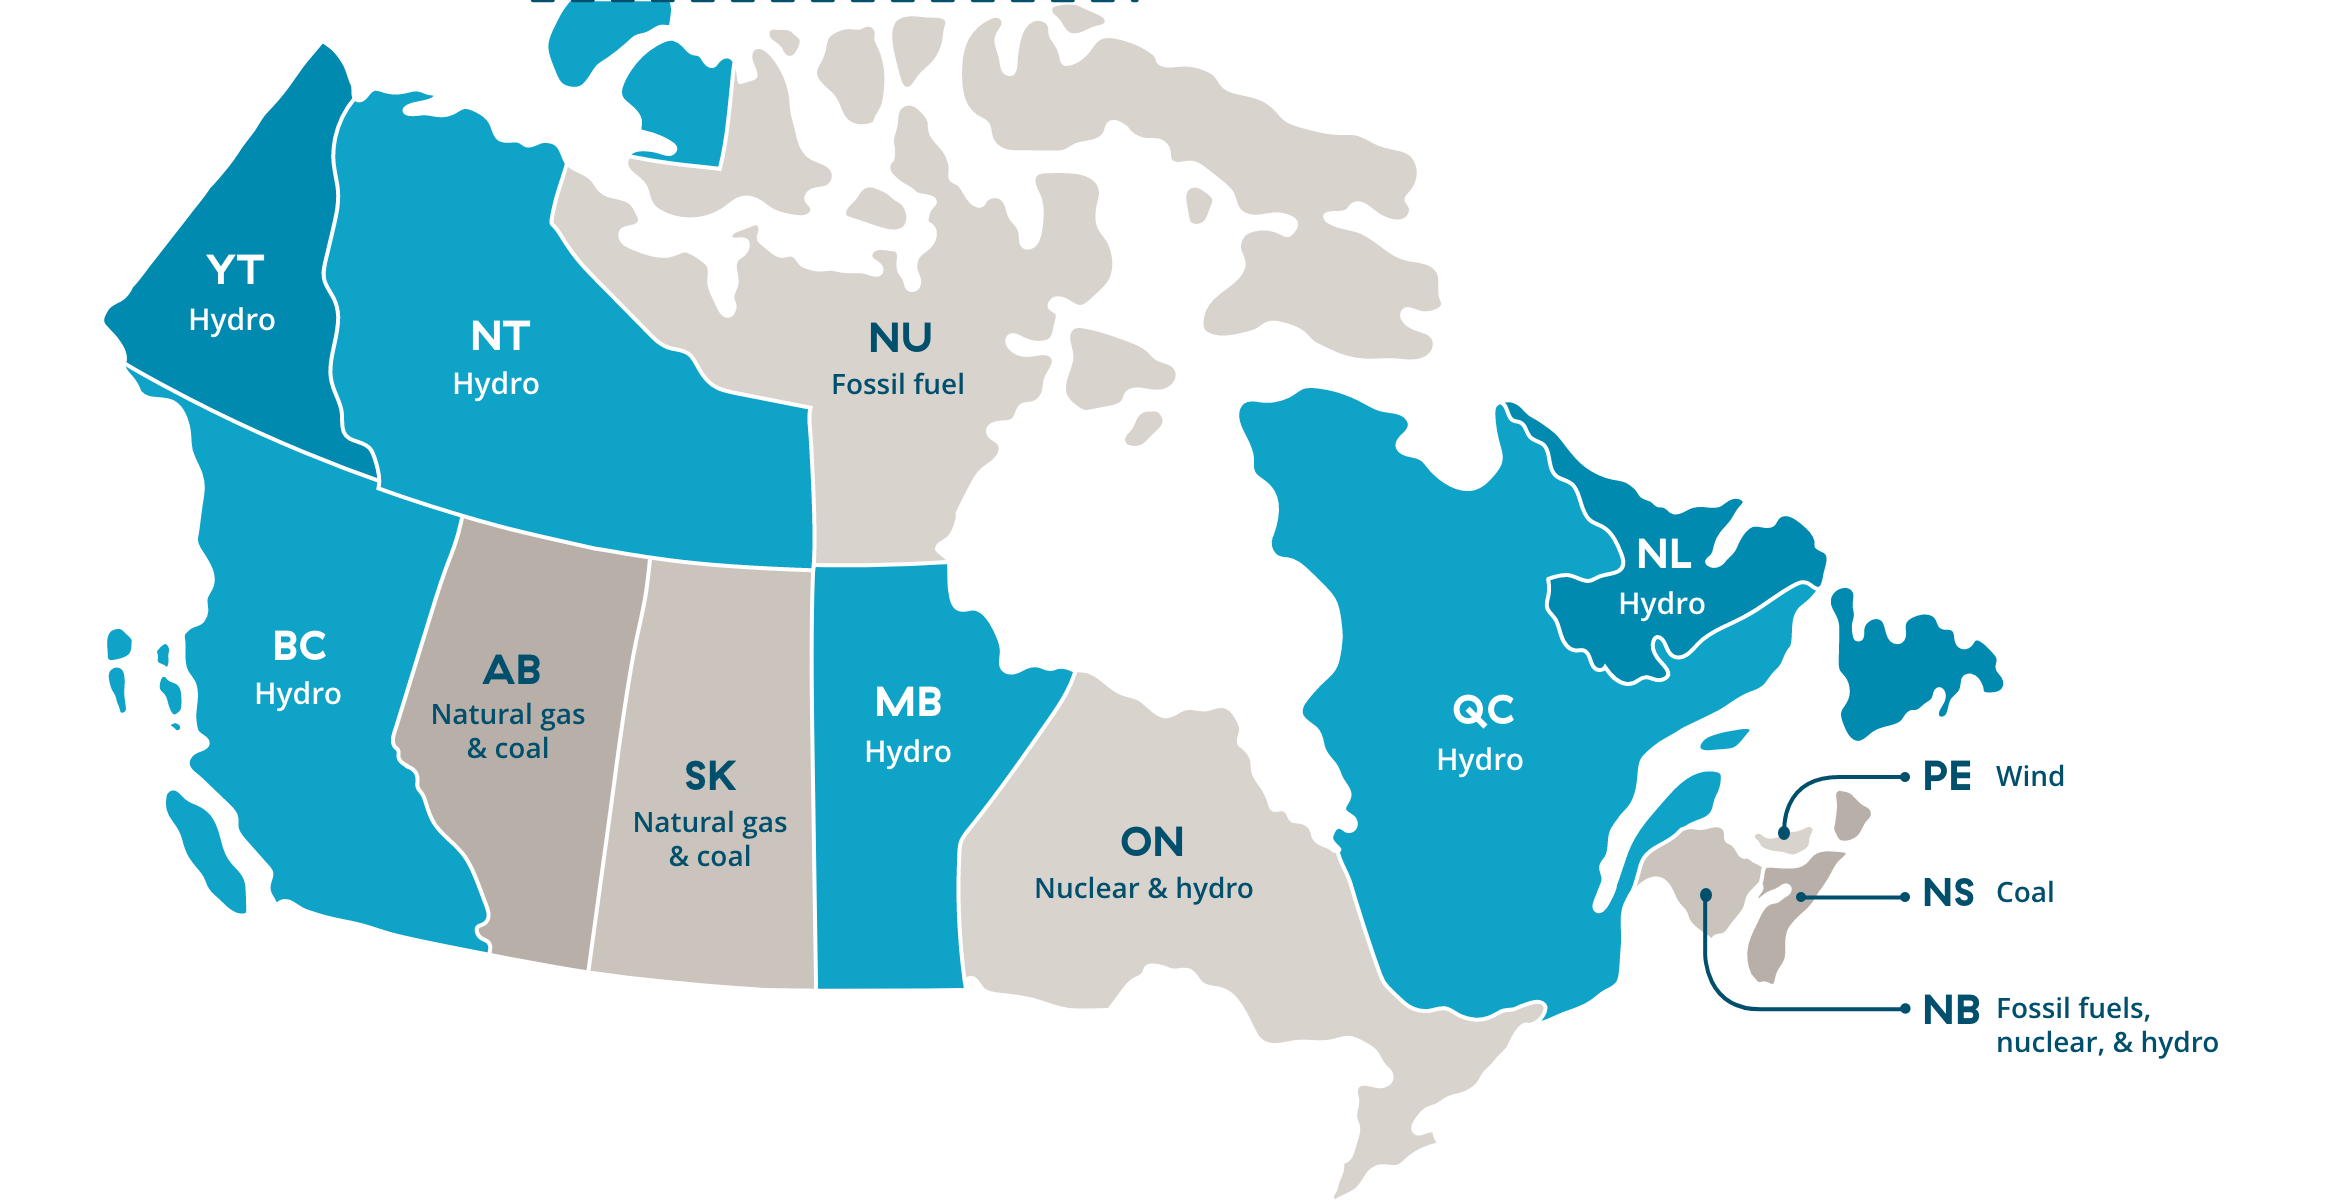 Map of clean energy sources in Canada